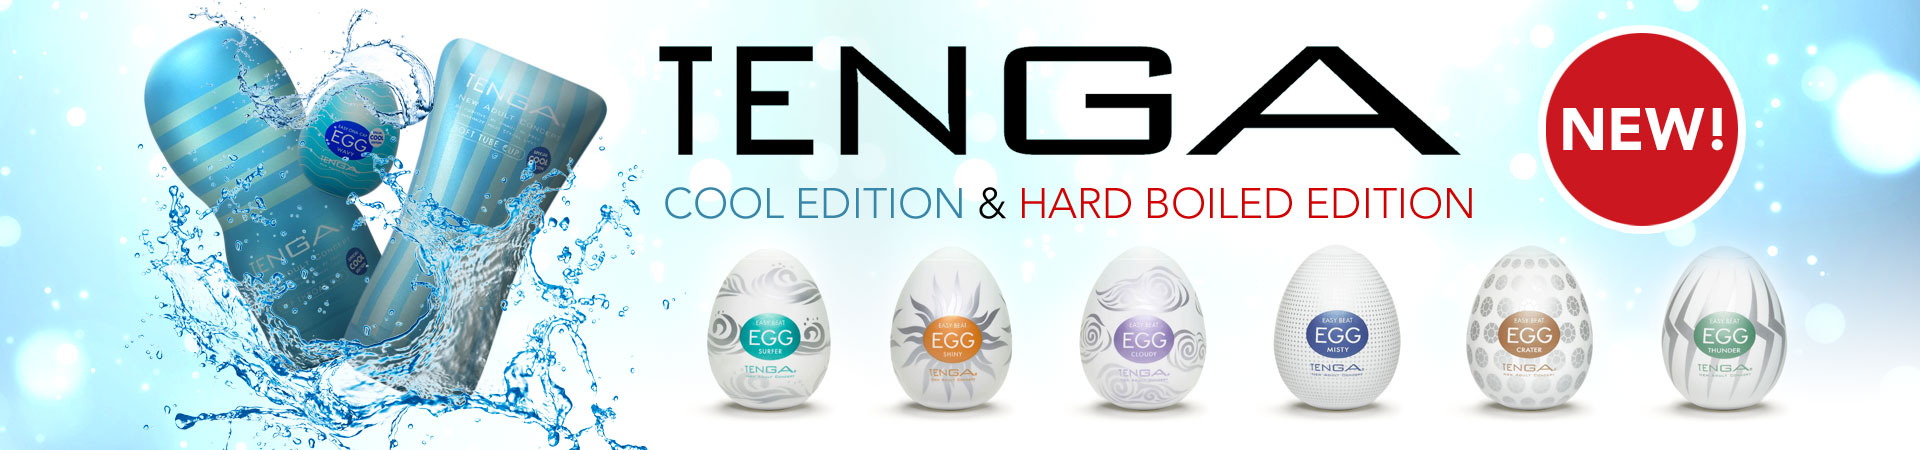 New From Tenga! Cool Edition & Hard Boiled Edition